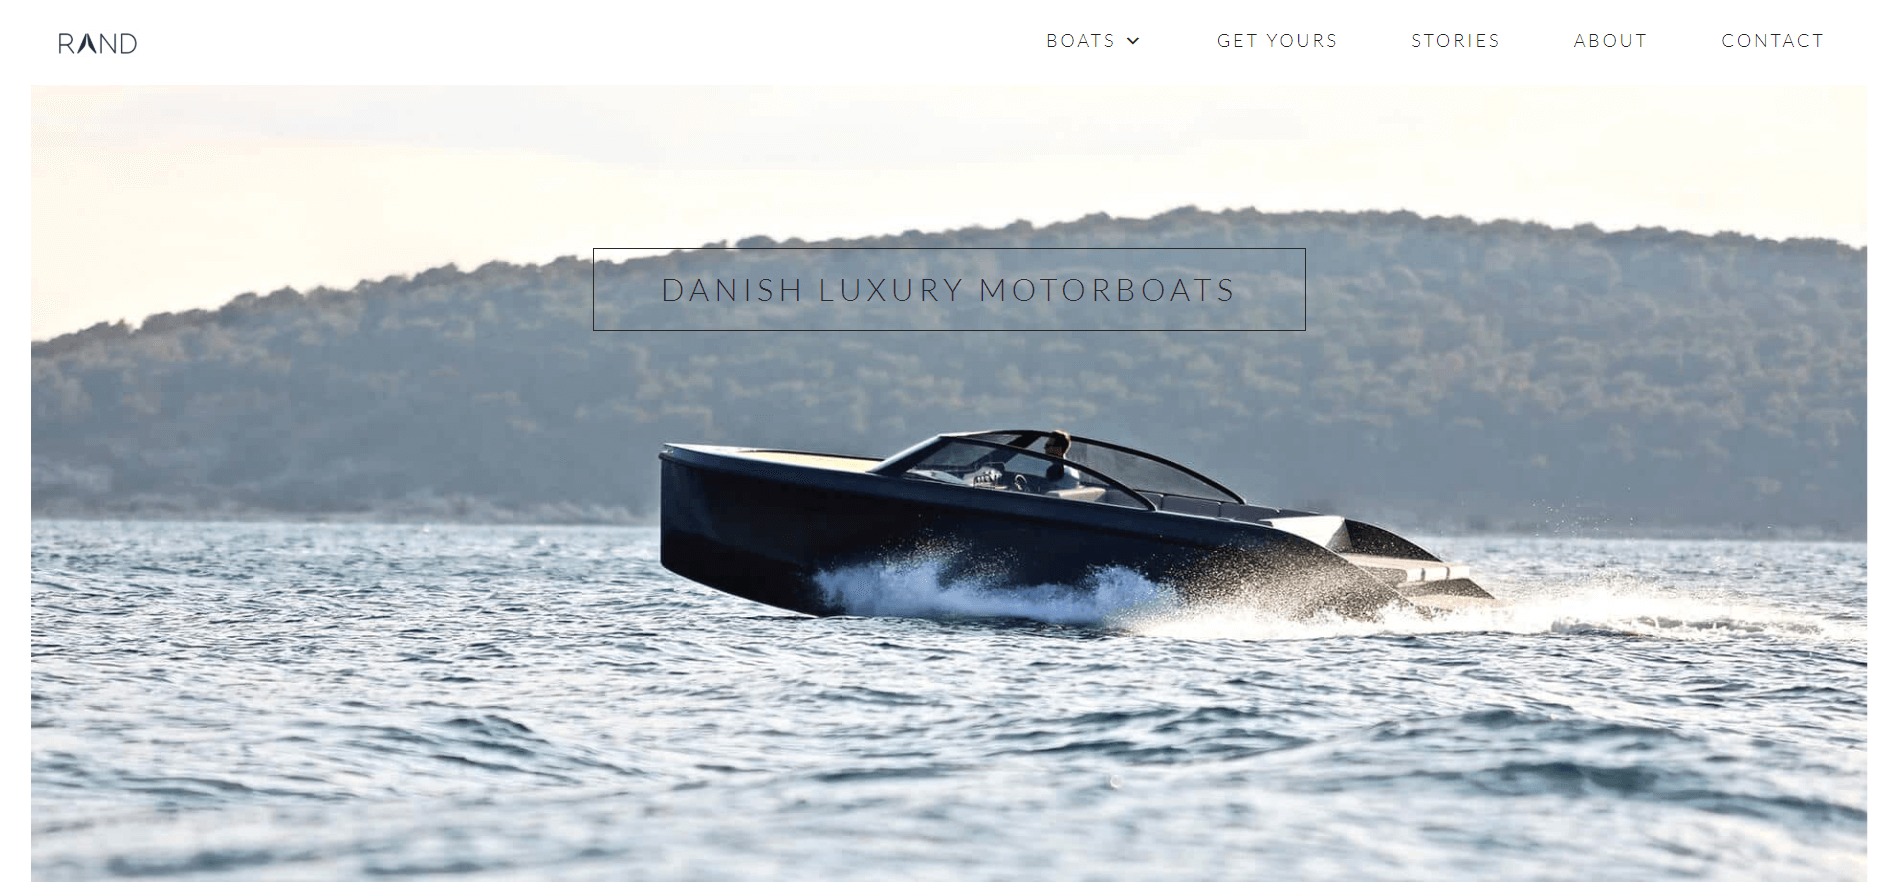 karoline, paarup, portfolio, website, project, rand, boats, website, cover